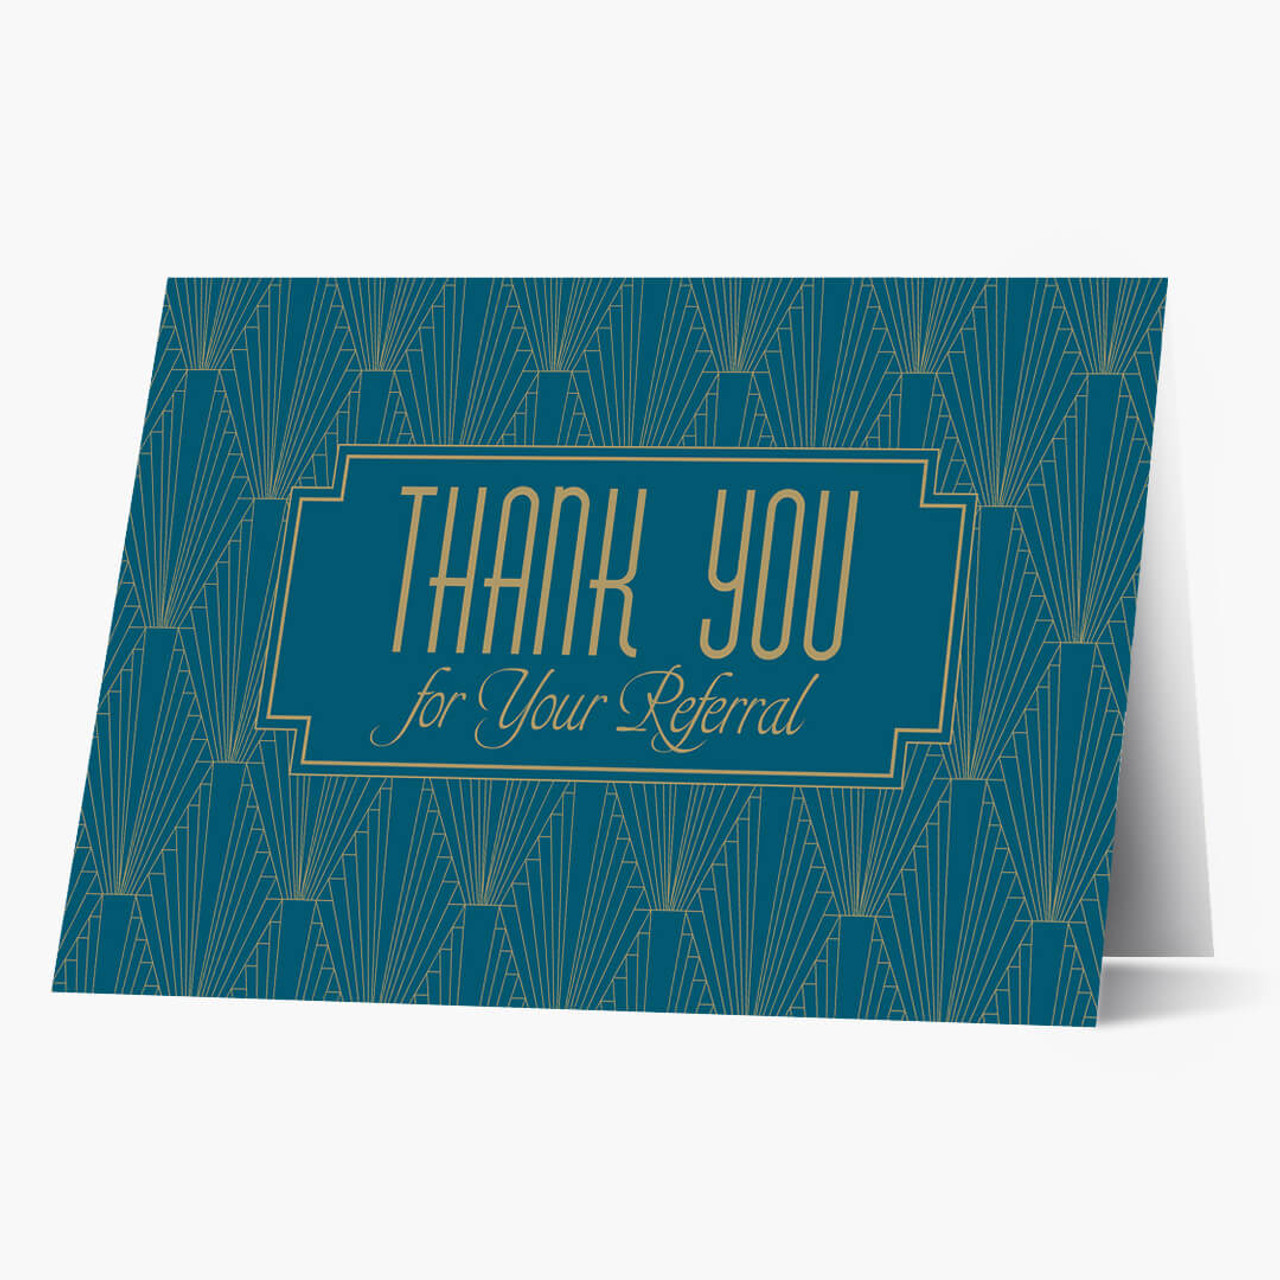 Deco Thank You - Referral